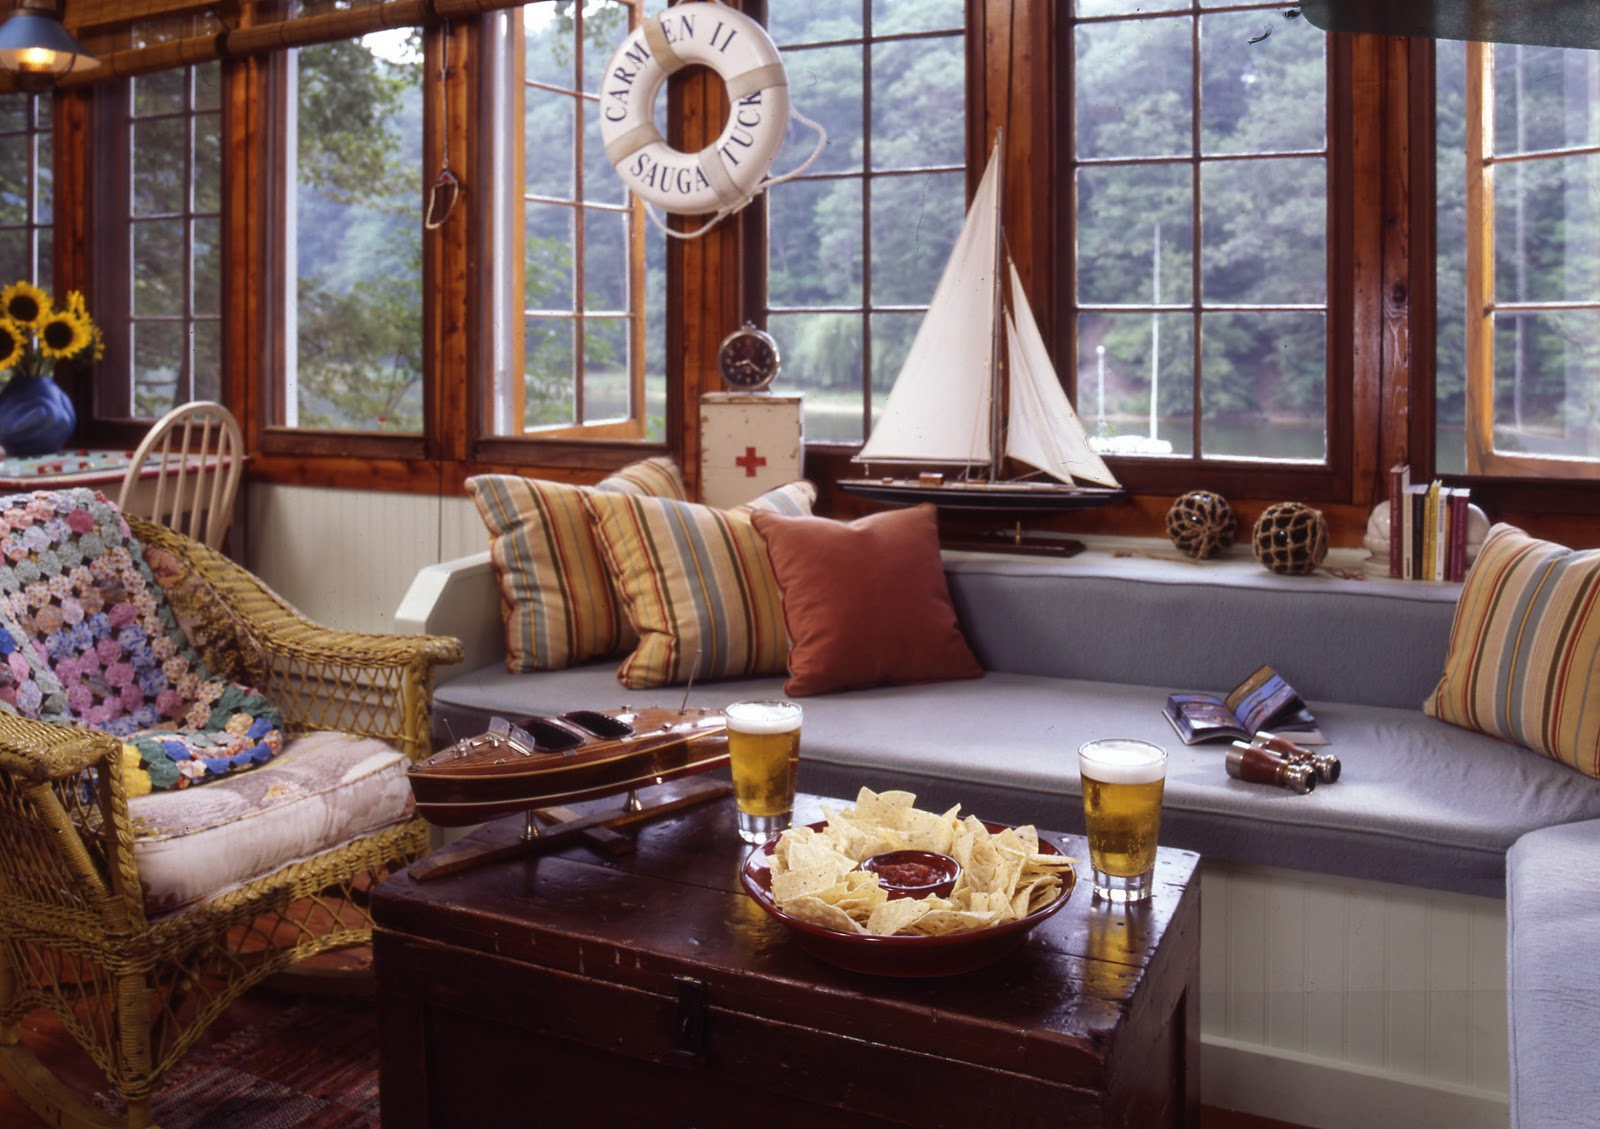 Skipjack 39 s nautical living waterside cottages - Nautical theme living room ...